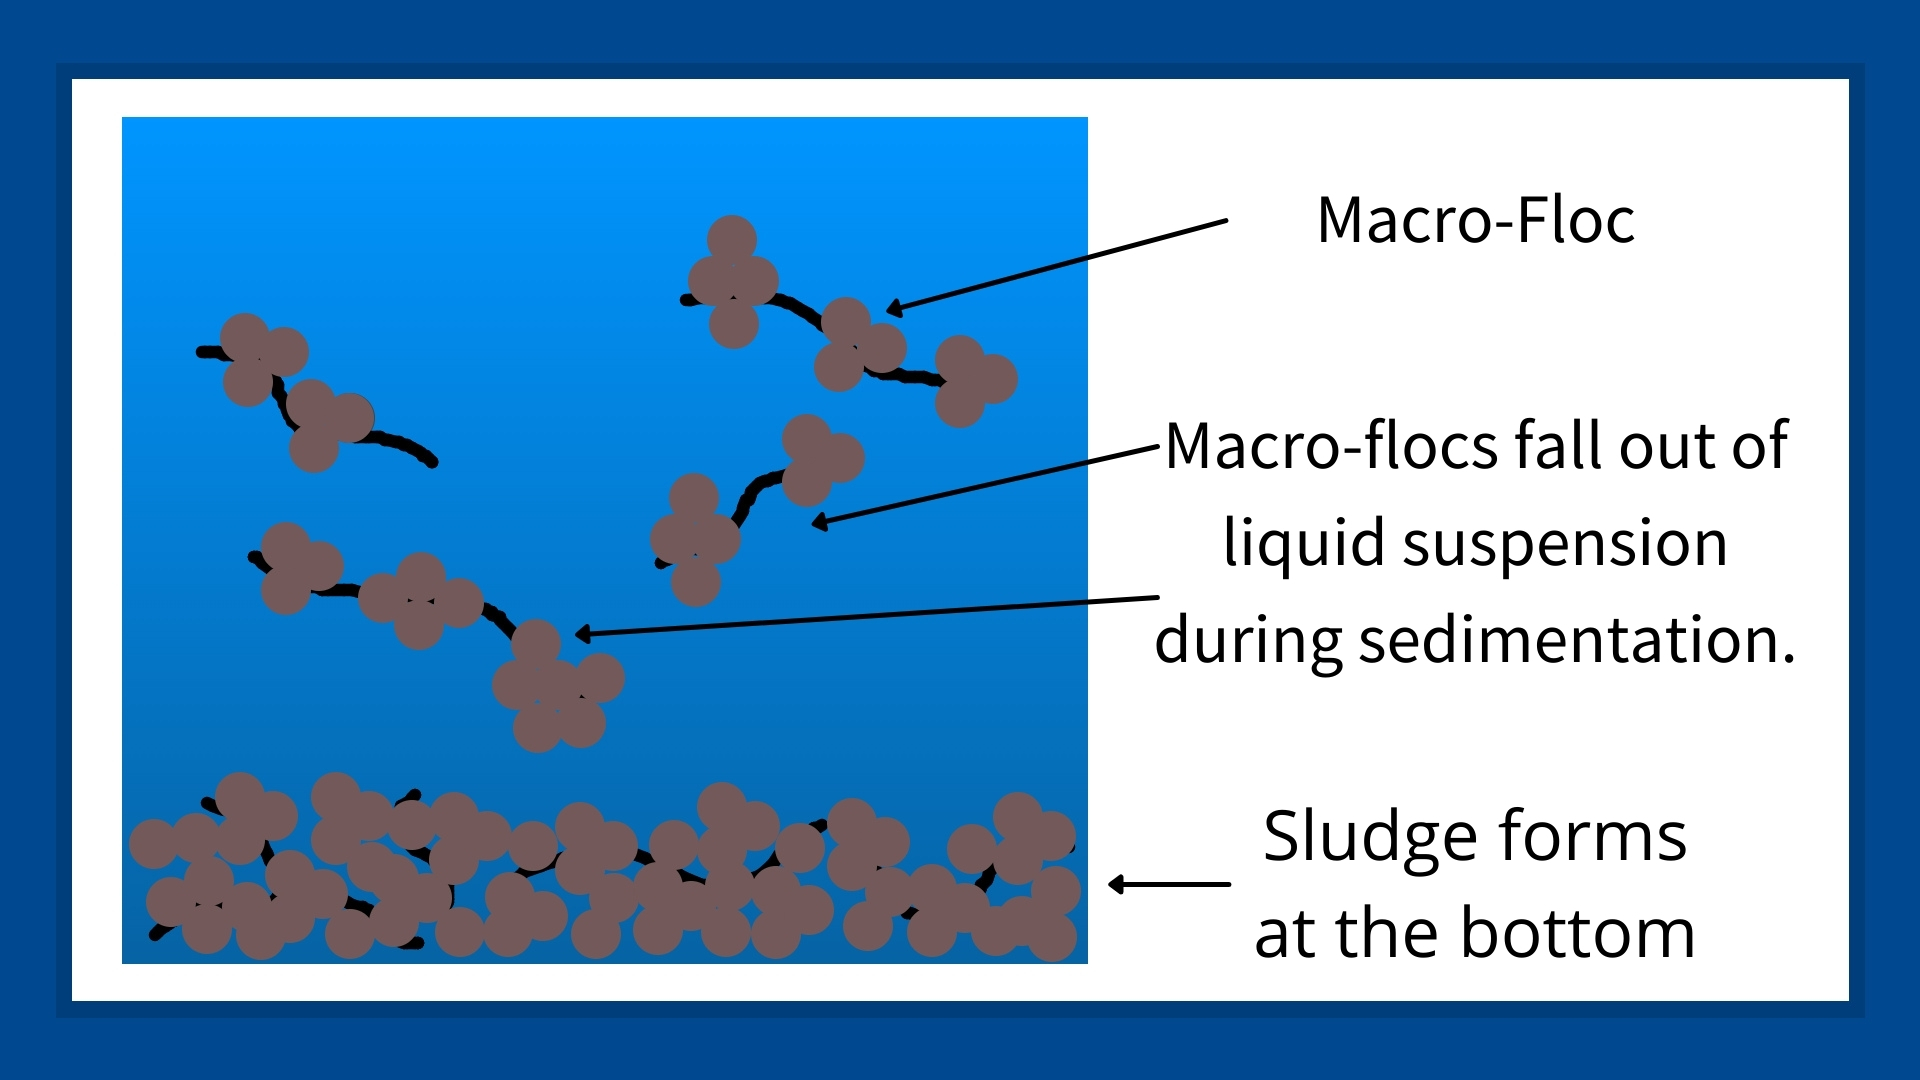 This image contains a graphic to the left and text on the right. The graphic and text are showing how flocculants capture small particles and bring them together for form large particles that increase sedimentation.